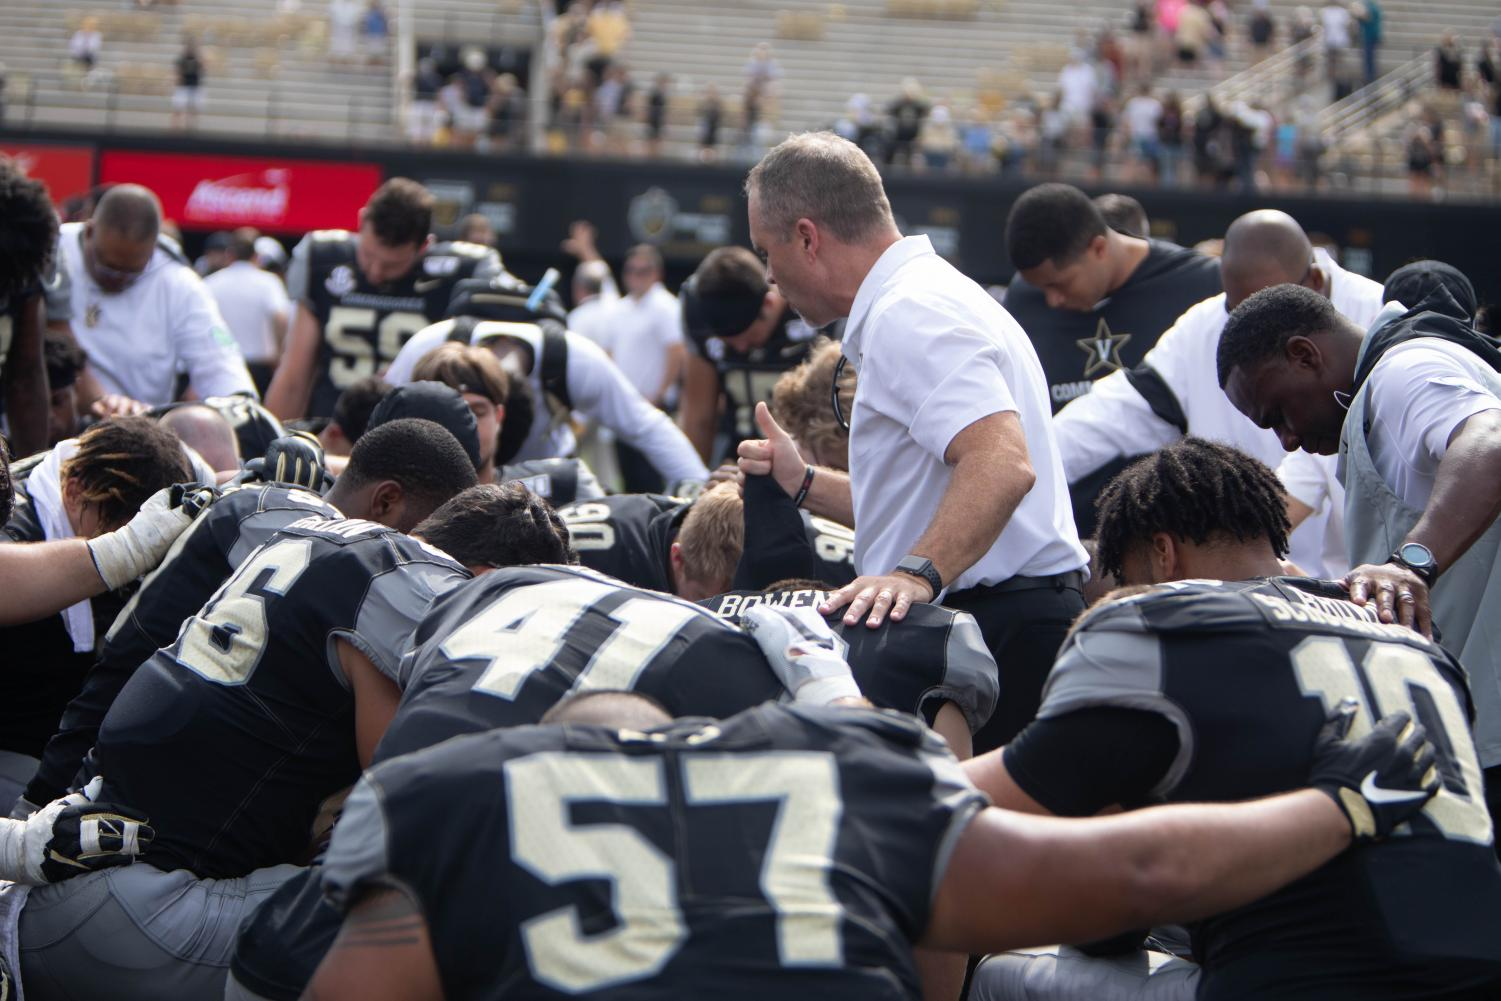 Vanderbilt prepares for a home matchup with Northern Illinois.